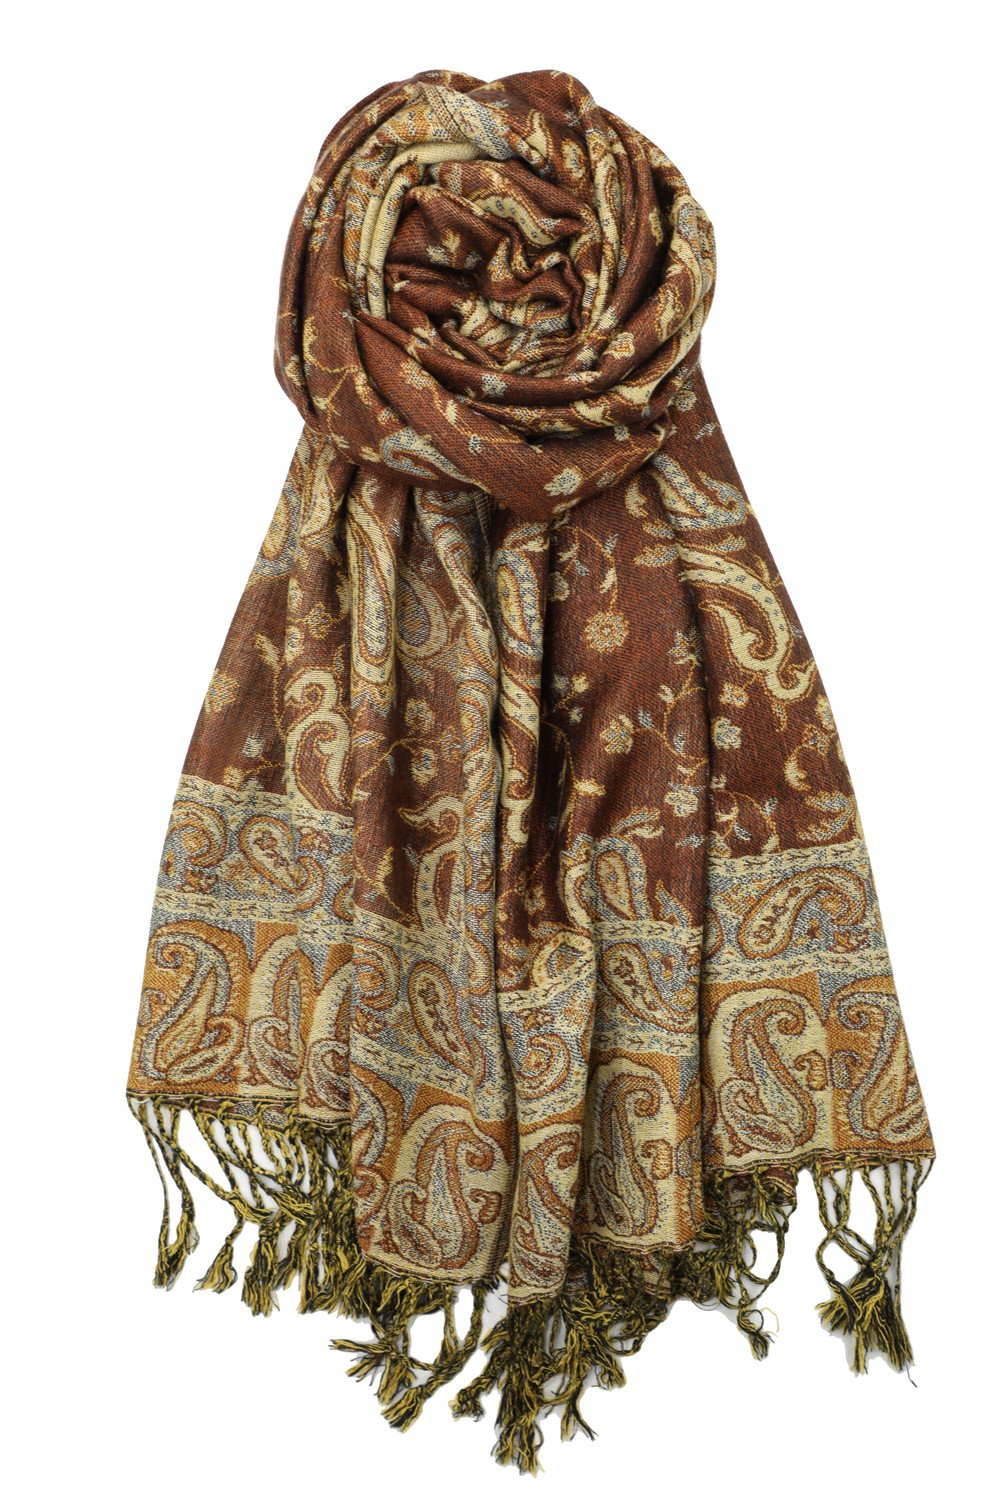 Achillea Soft Silky Reversible Paisley Pashmina Shawl Wrap Scarf w/Fringes 80'' x 28'' (Brown)